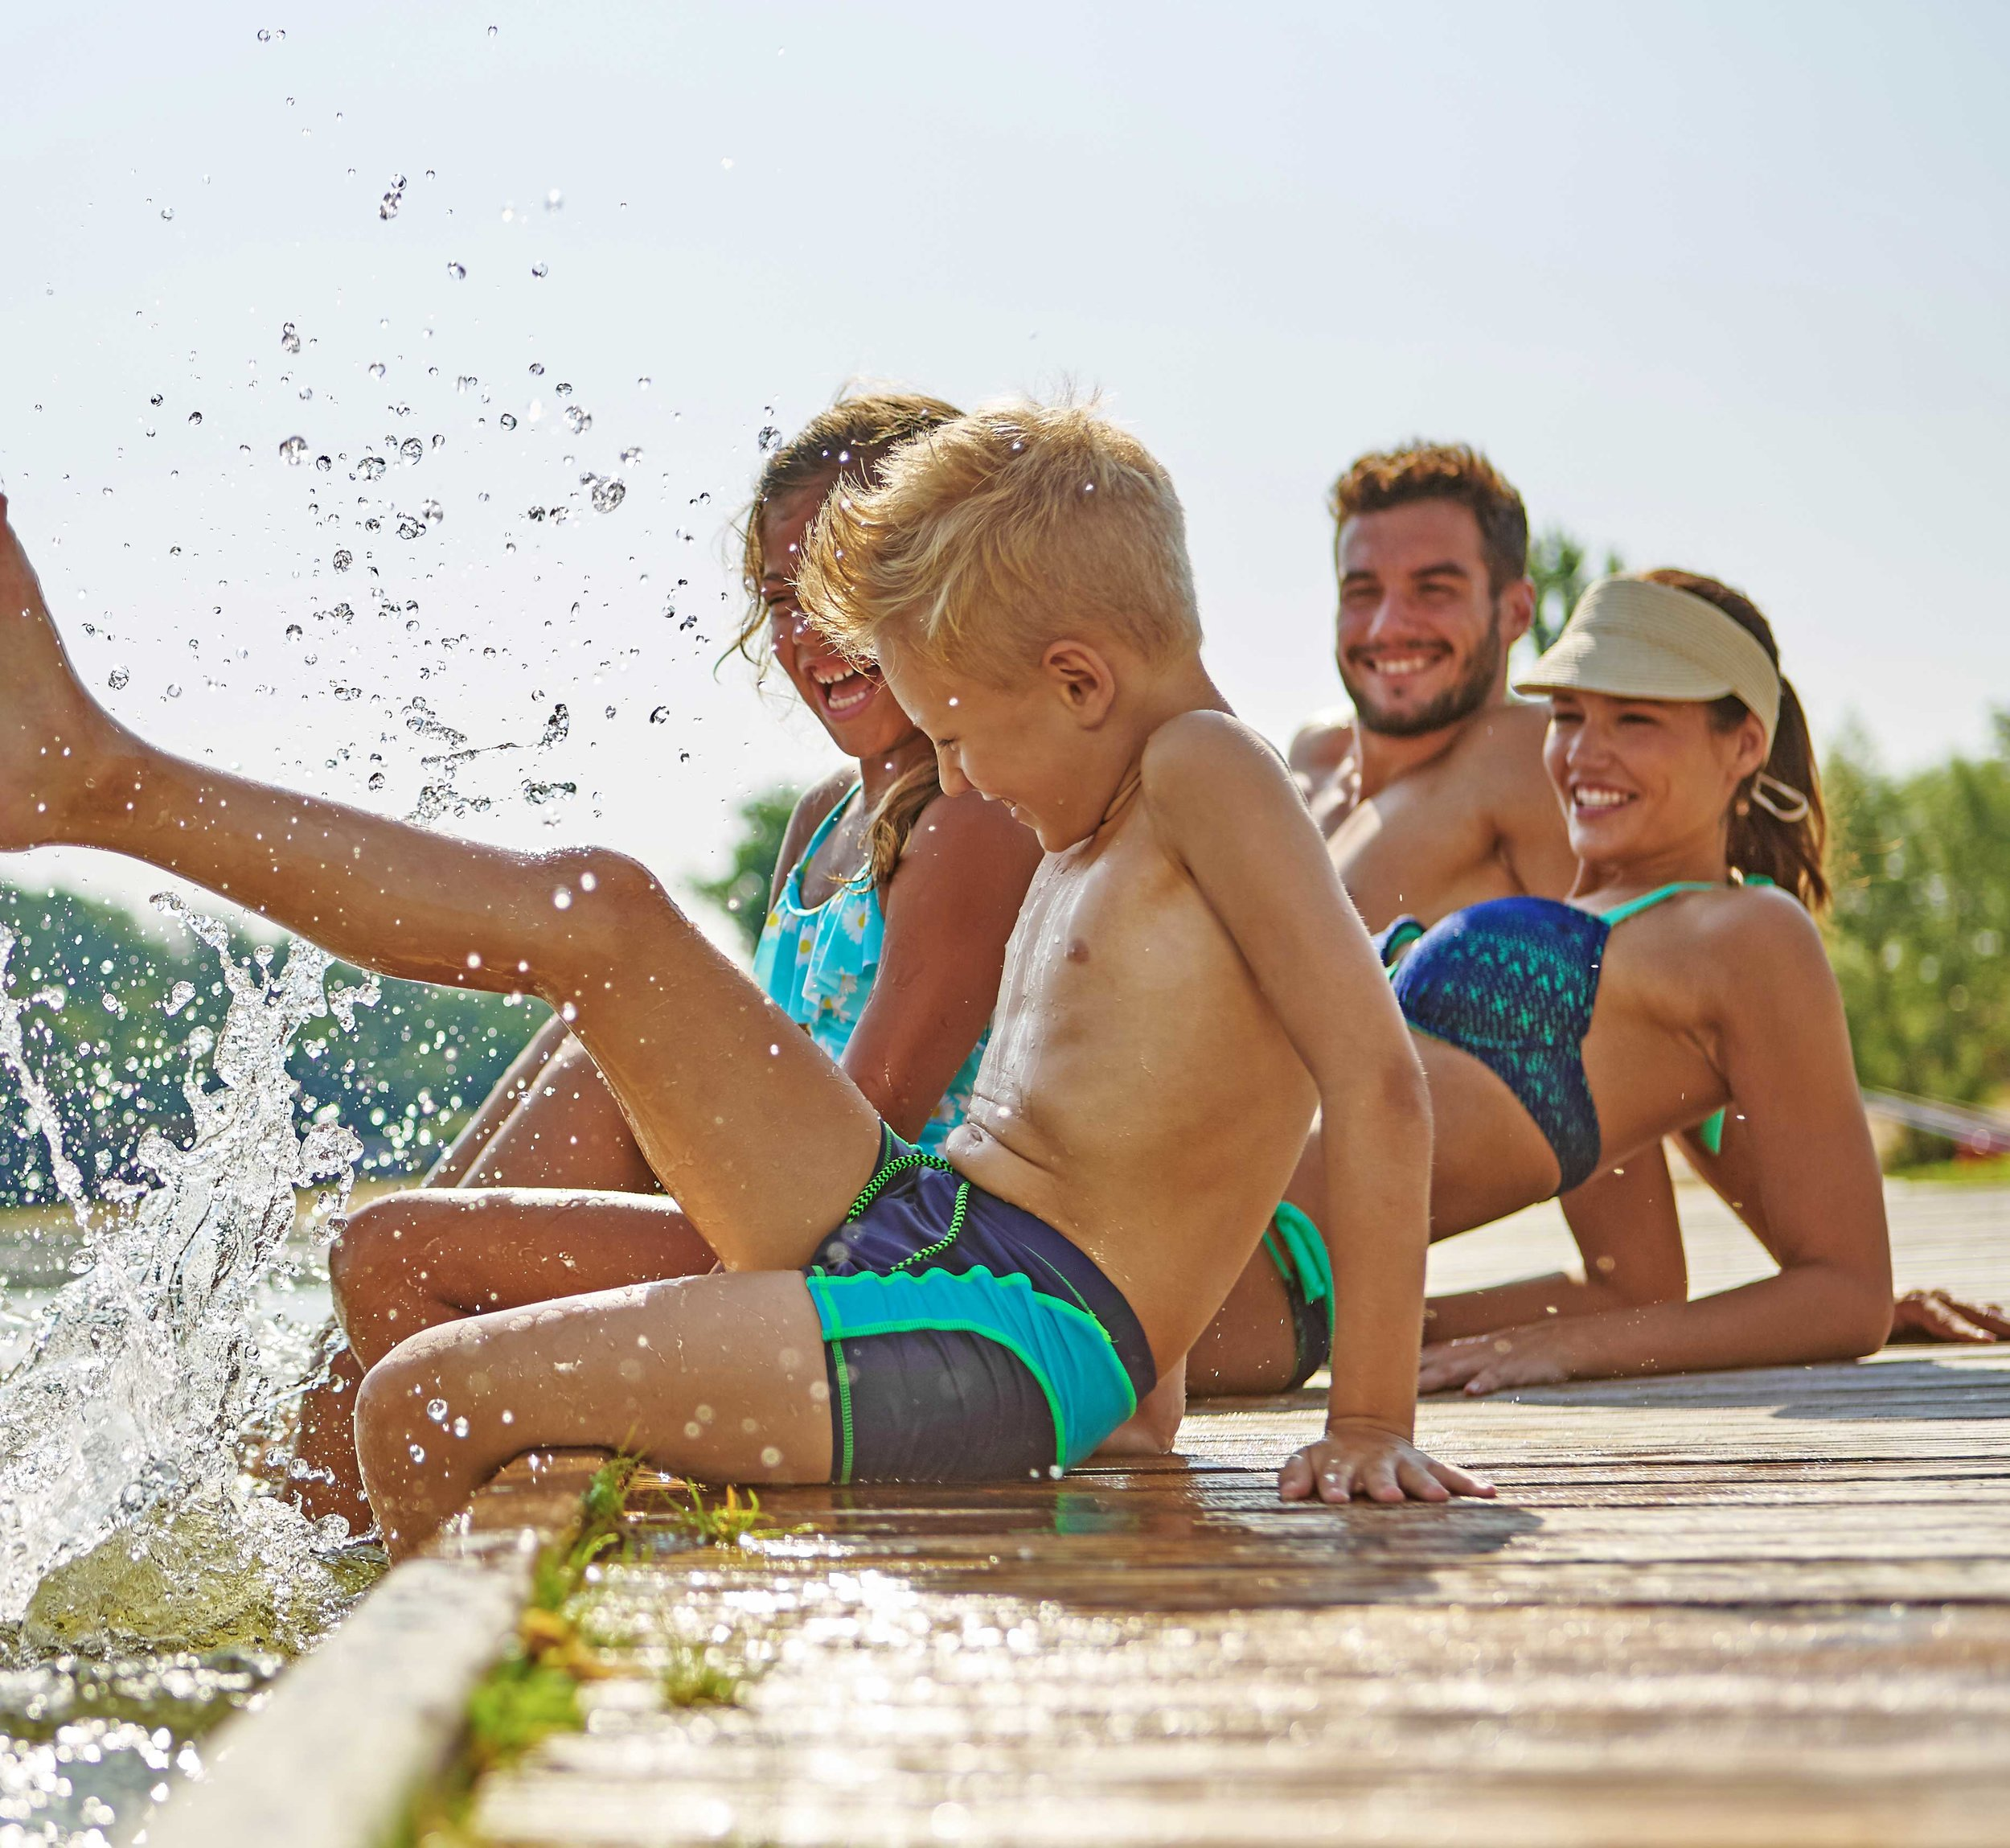 bigstock-Family-splashing-web.jpg